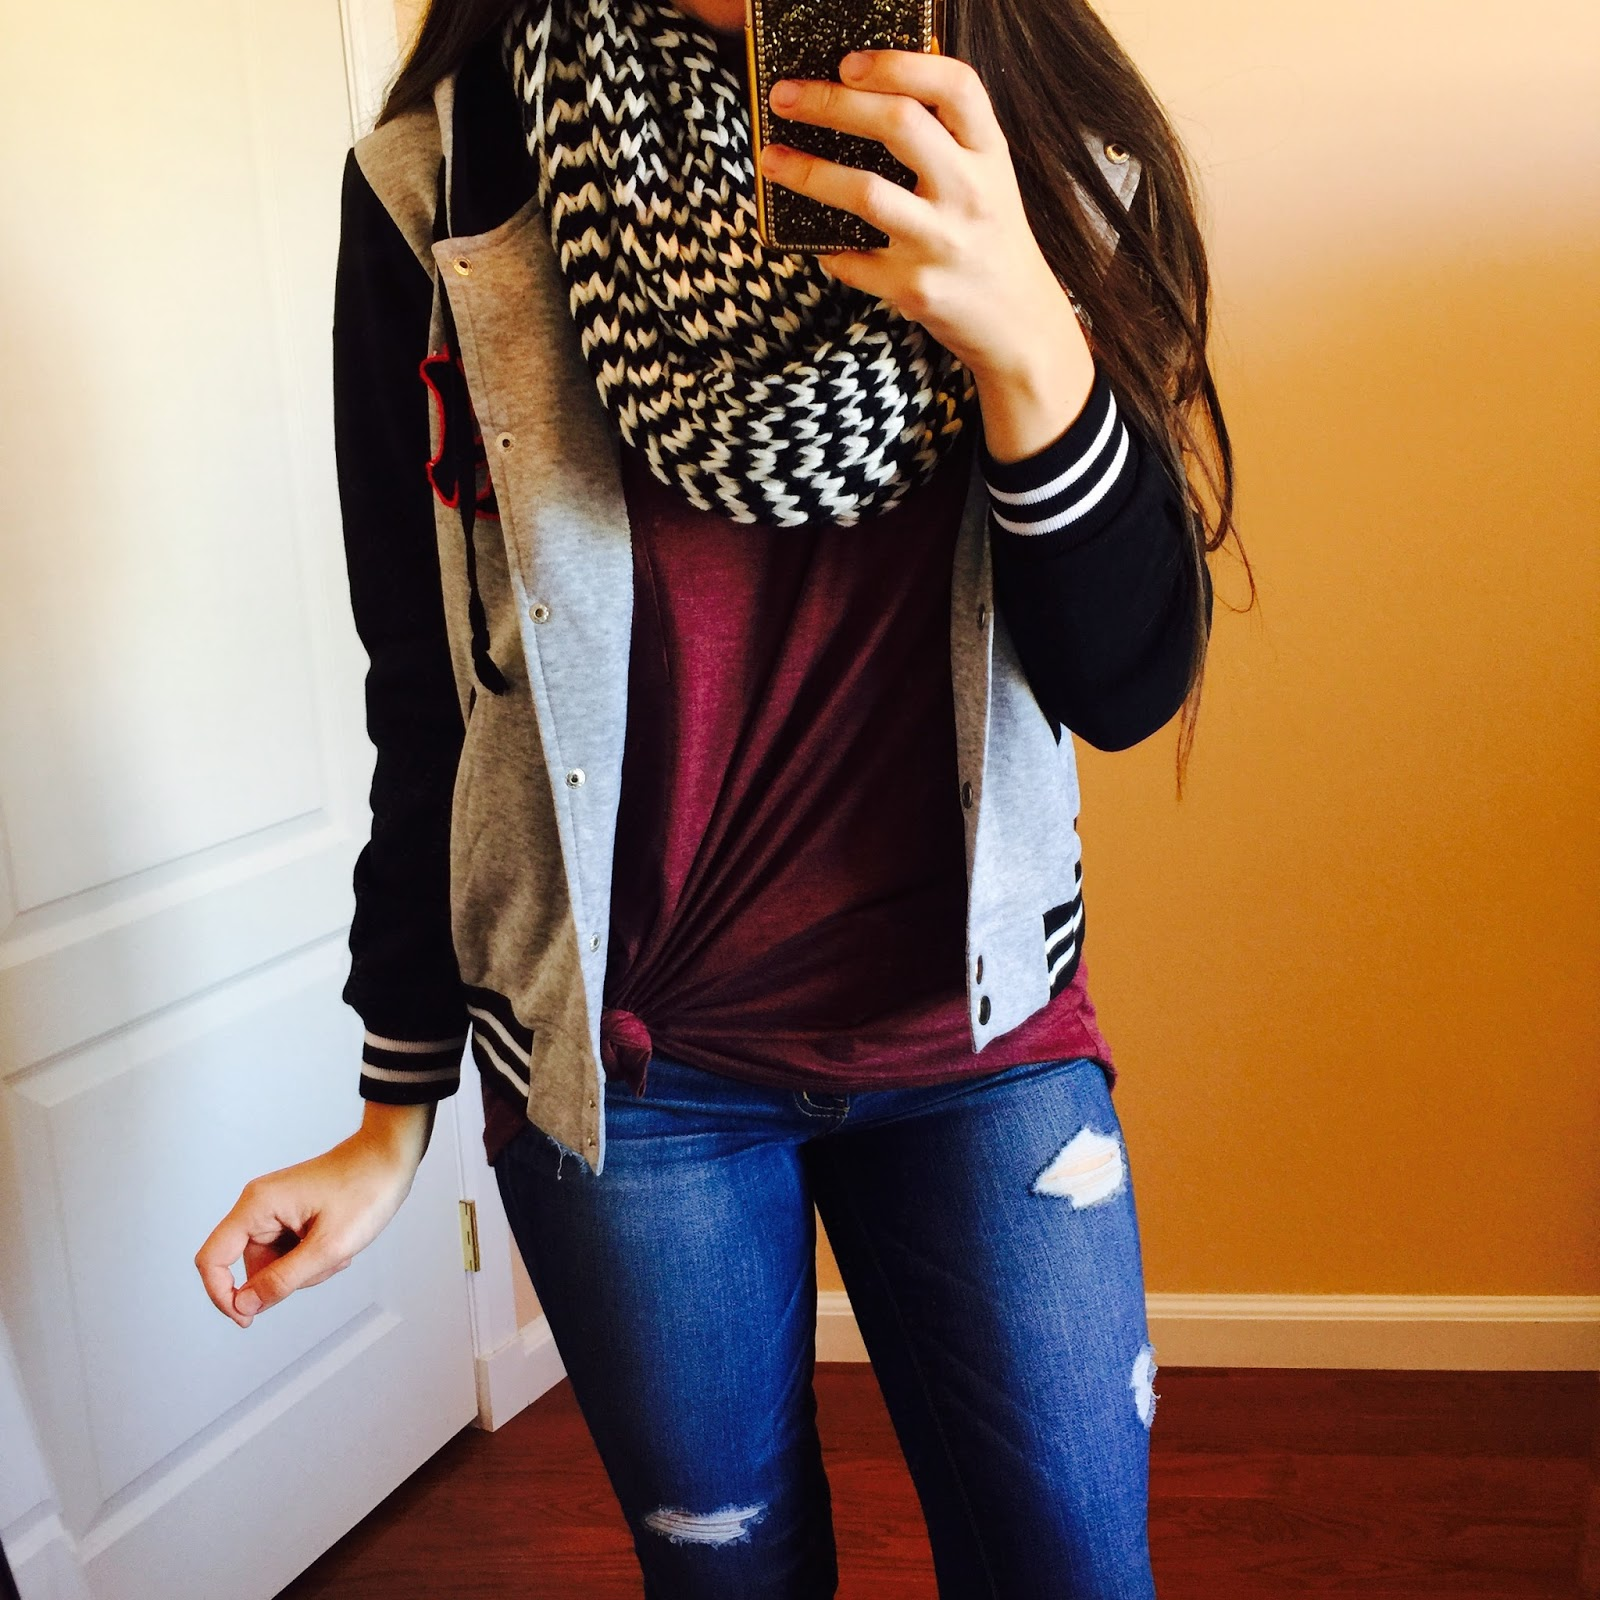 Curvy Outfit Ideas | Petite Outfit Ideas | Plus Size Fashion | Summer Fashion | OOTD | Professional Casual Chic Fashion and Style Inspiration | How to Style a Letterman Jacket | houndstooth scarf, burgundy top, oversized burgundy top, destroyed jeans